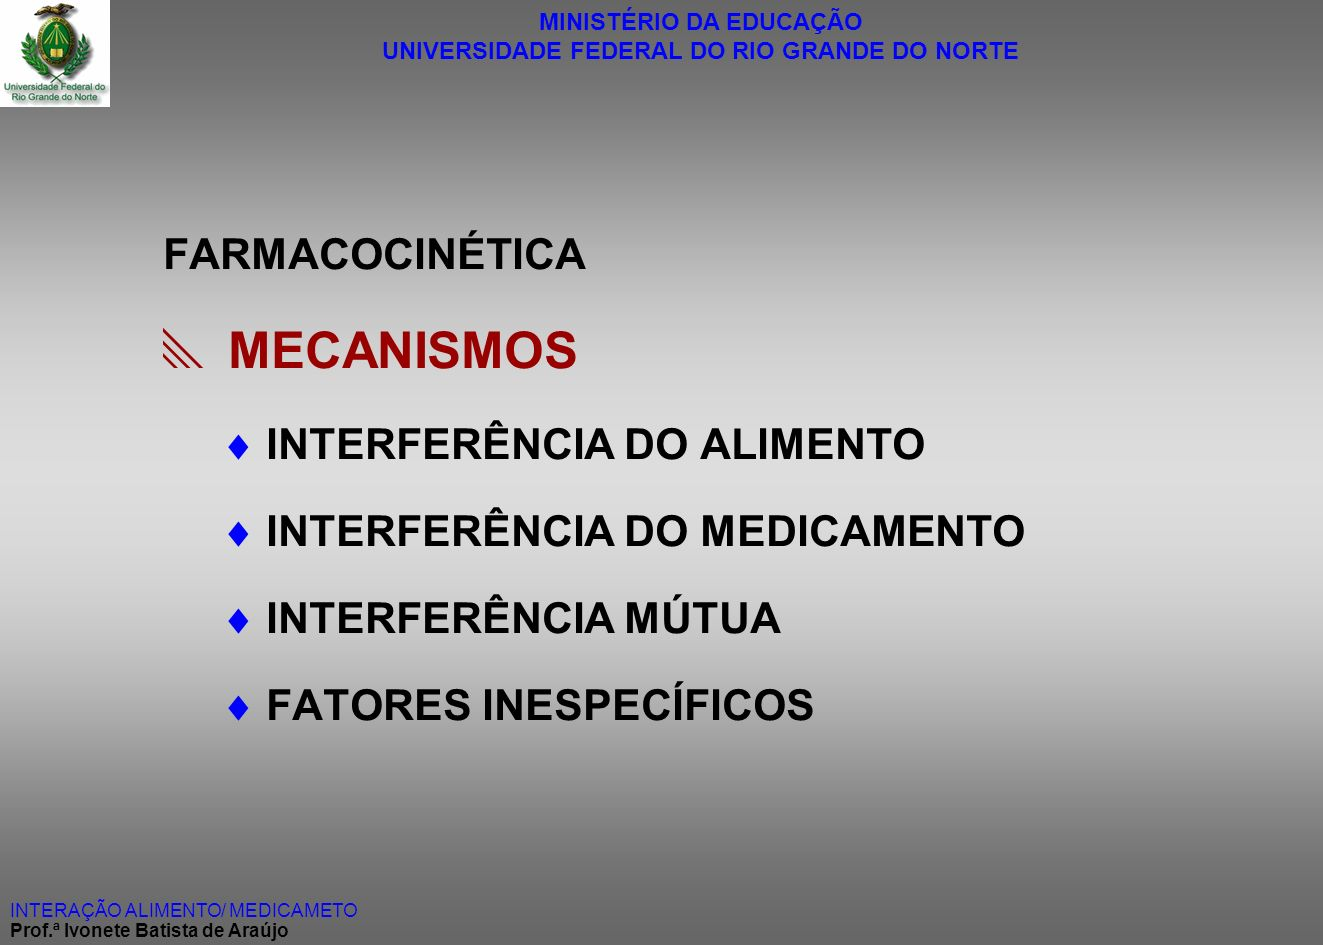  MECANISMOS FARMACOCINÉTICA  INTERFERÊNCIA DO ALIMENTO